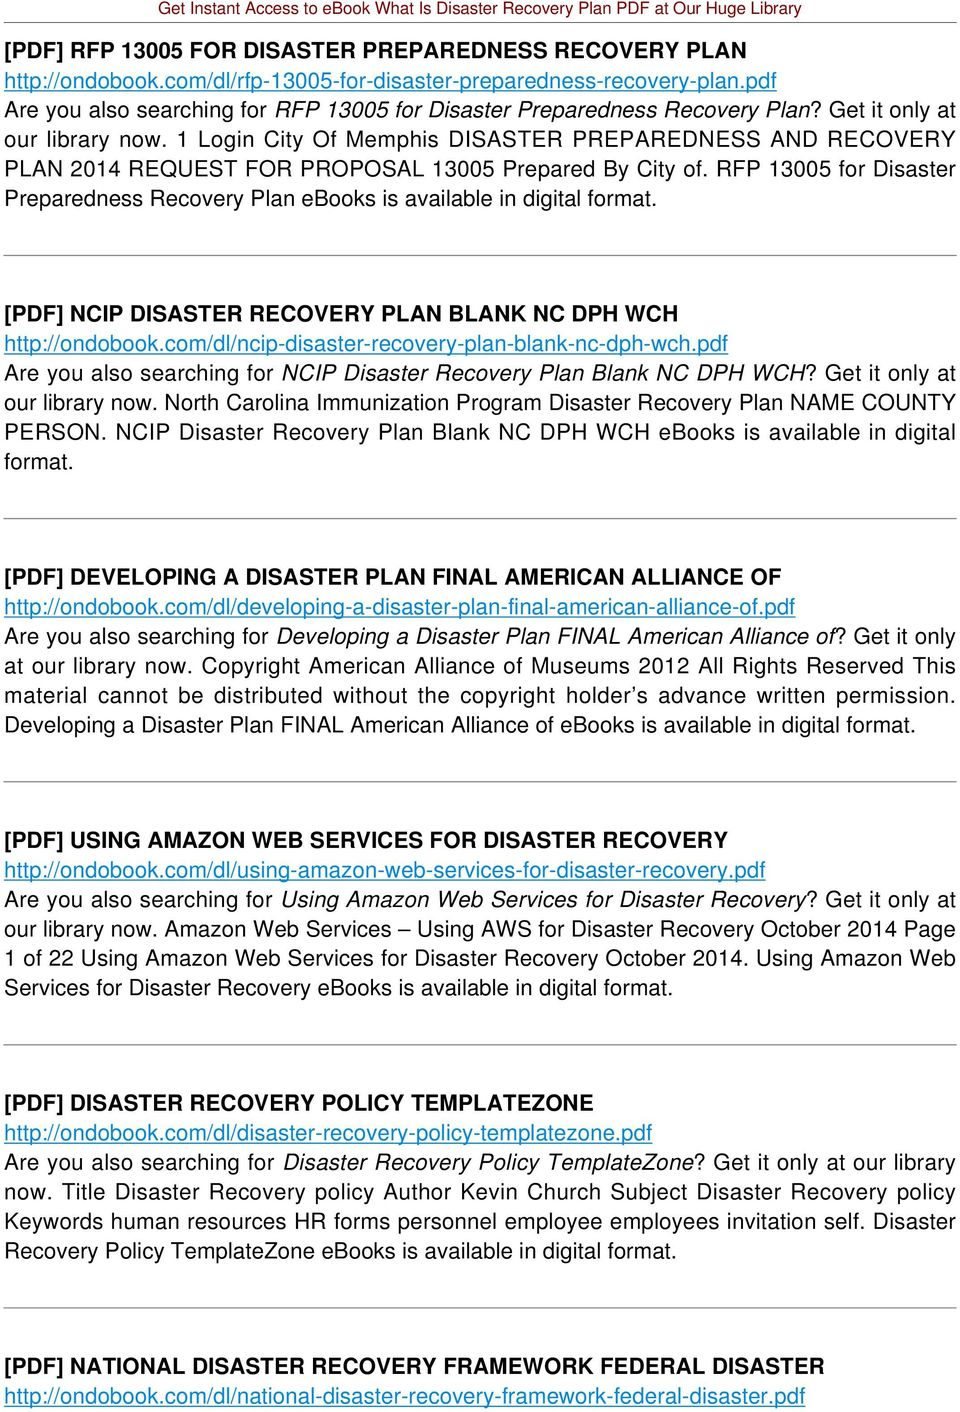 1 Login City Of Memphis DISASTER PREPAREDNESS AND RECOVERY PLAN 2014 REQUEST FOR PROPOSAL 13005 Prepared By City of.